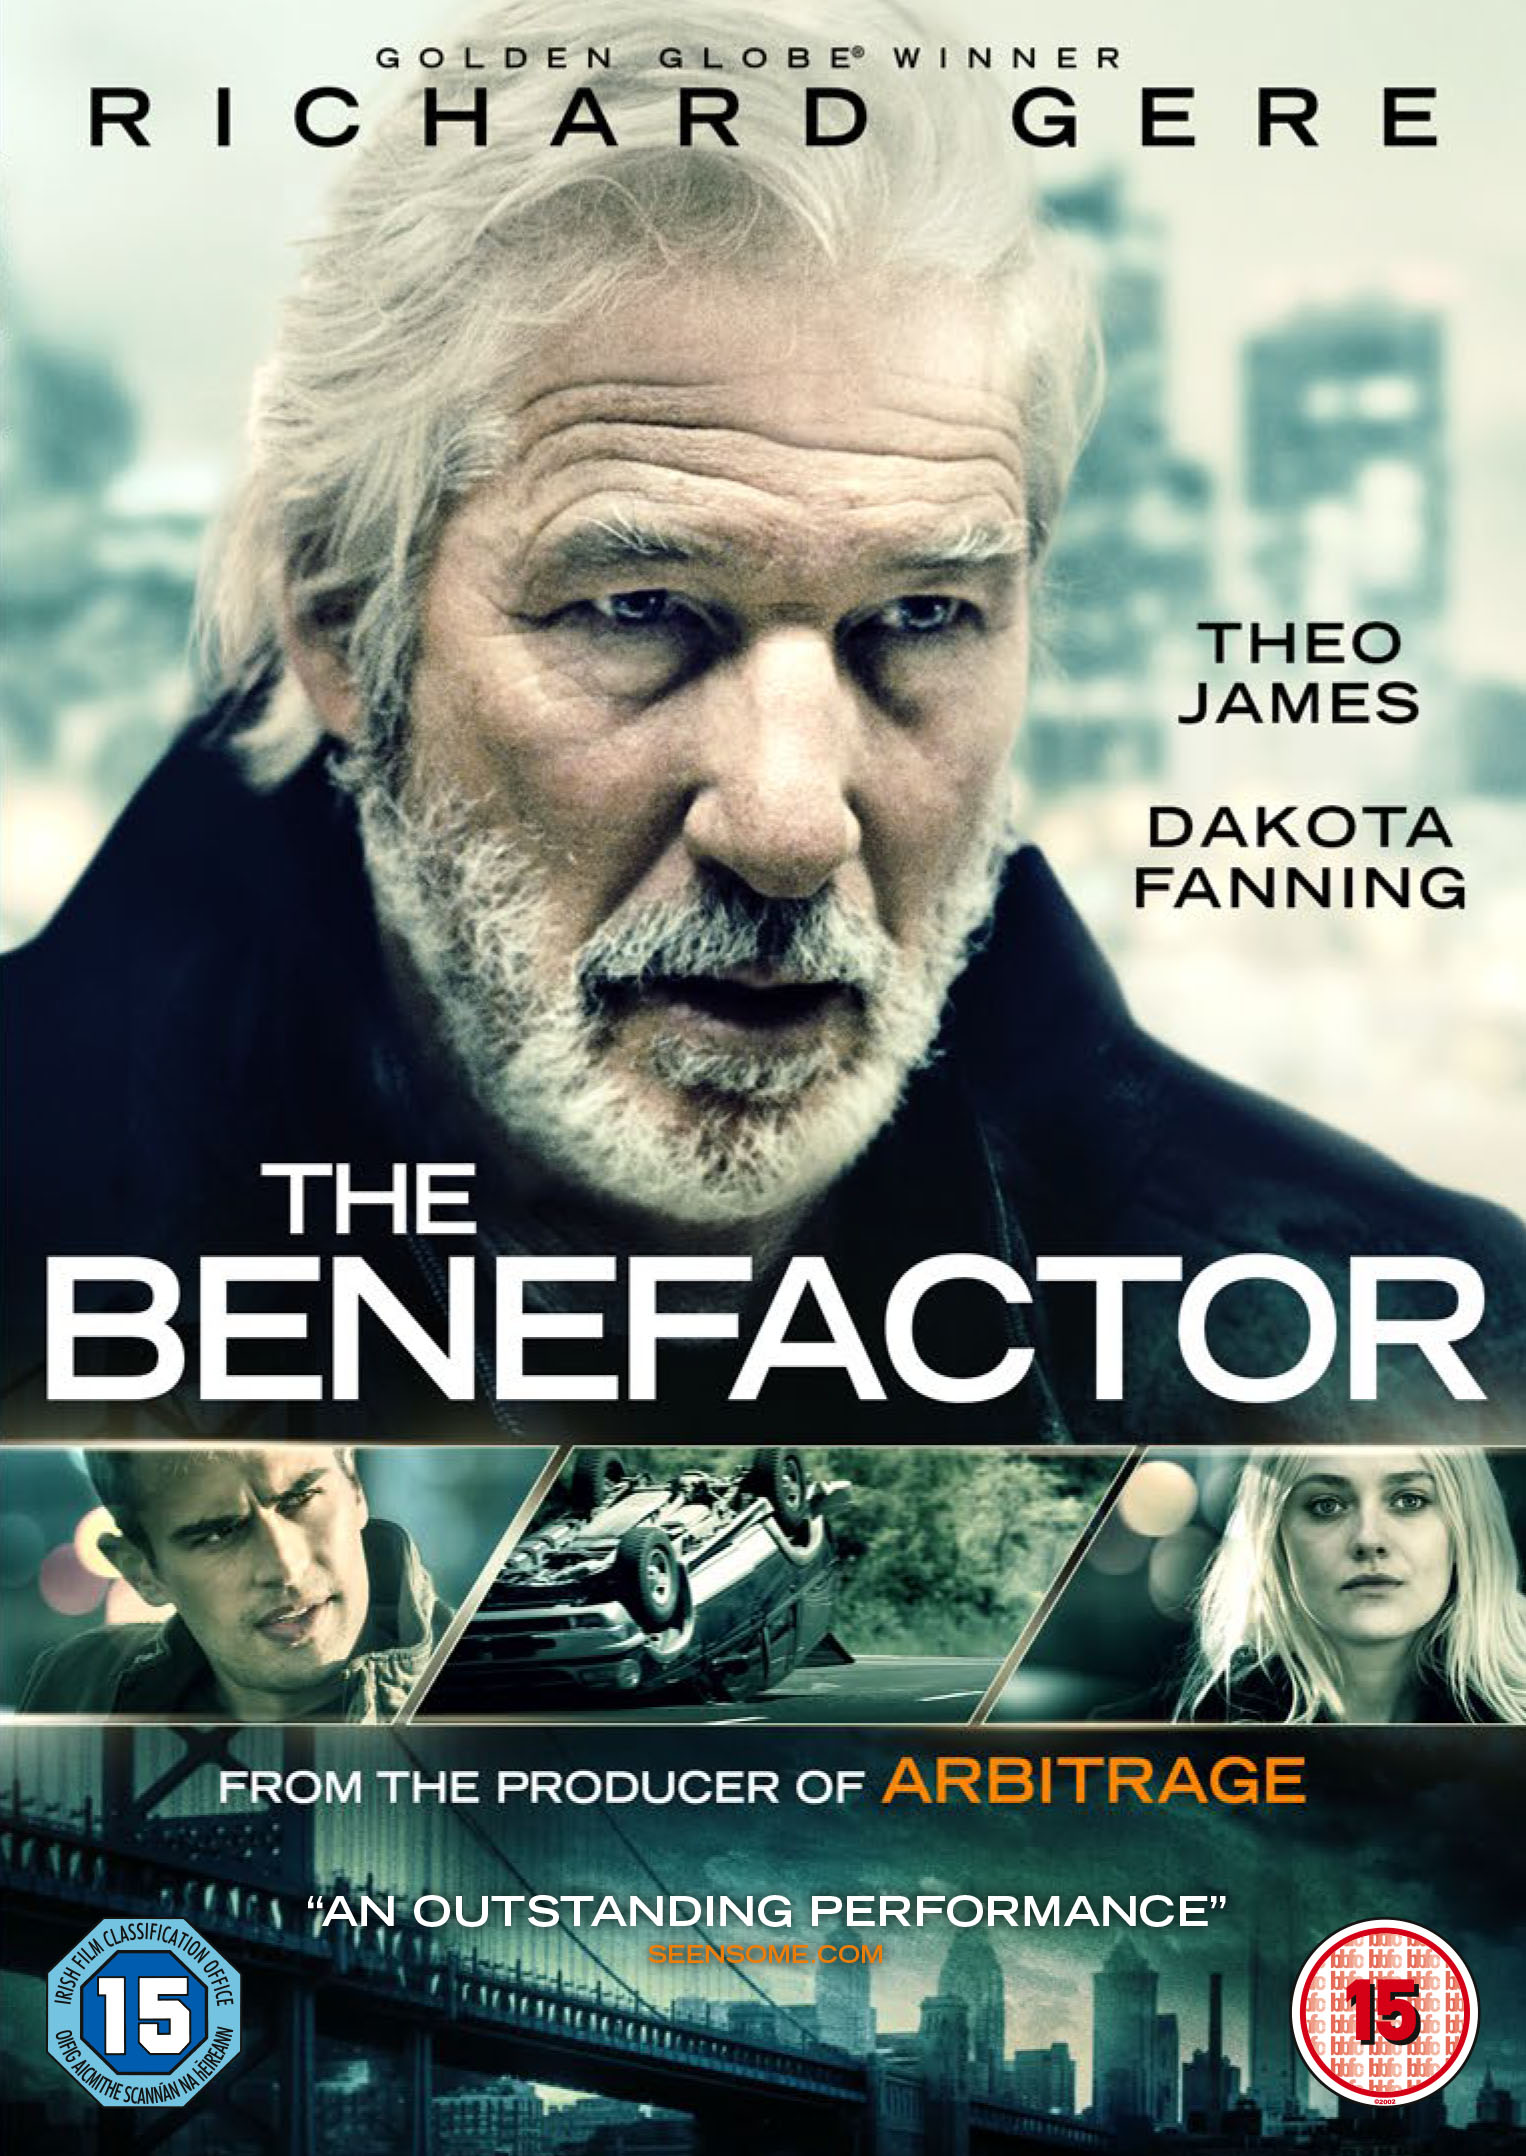 Sell Car Online >> The Benefactor - Fetch Publicity